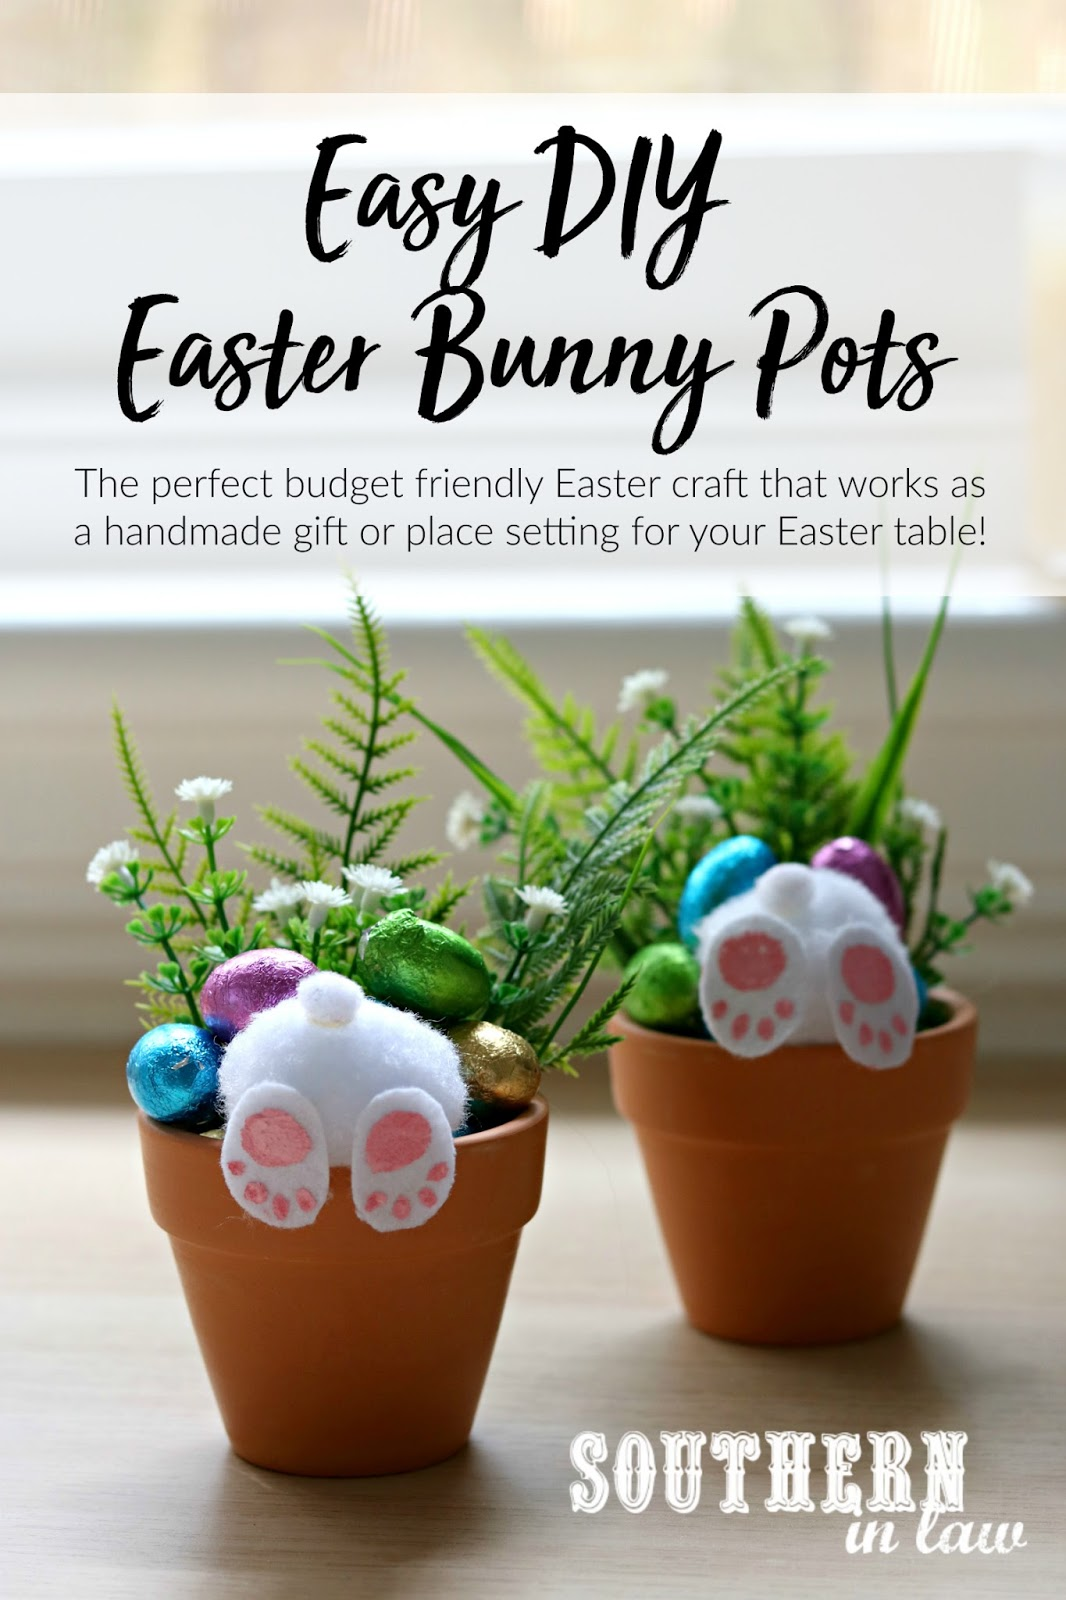 Southern in law how to make your own curious easter bunny pots an easy diy curious easter bunny pots handmade easter gift ideas place settings placecards negle Gallery